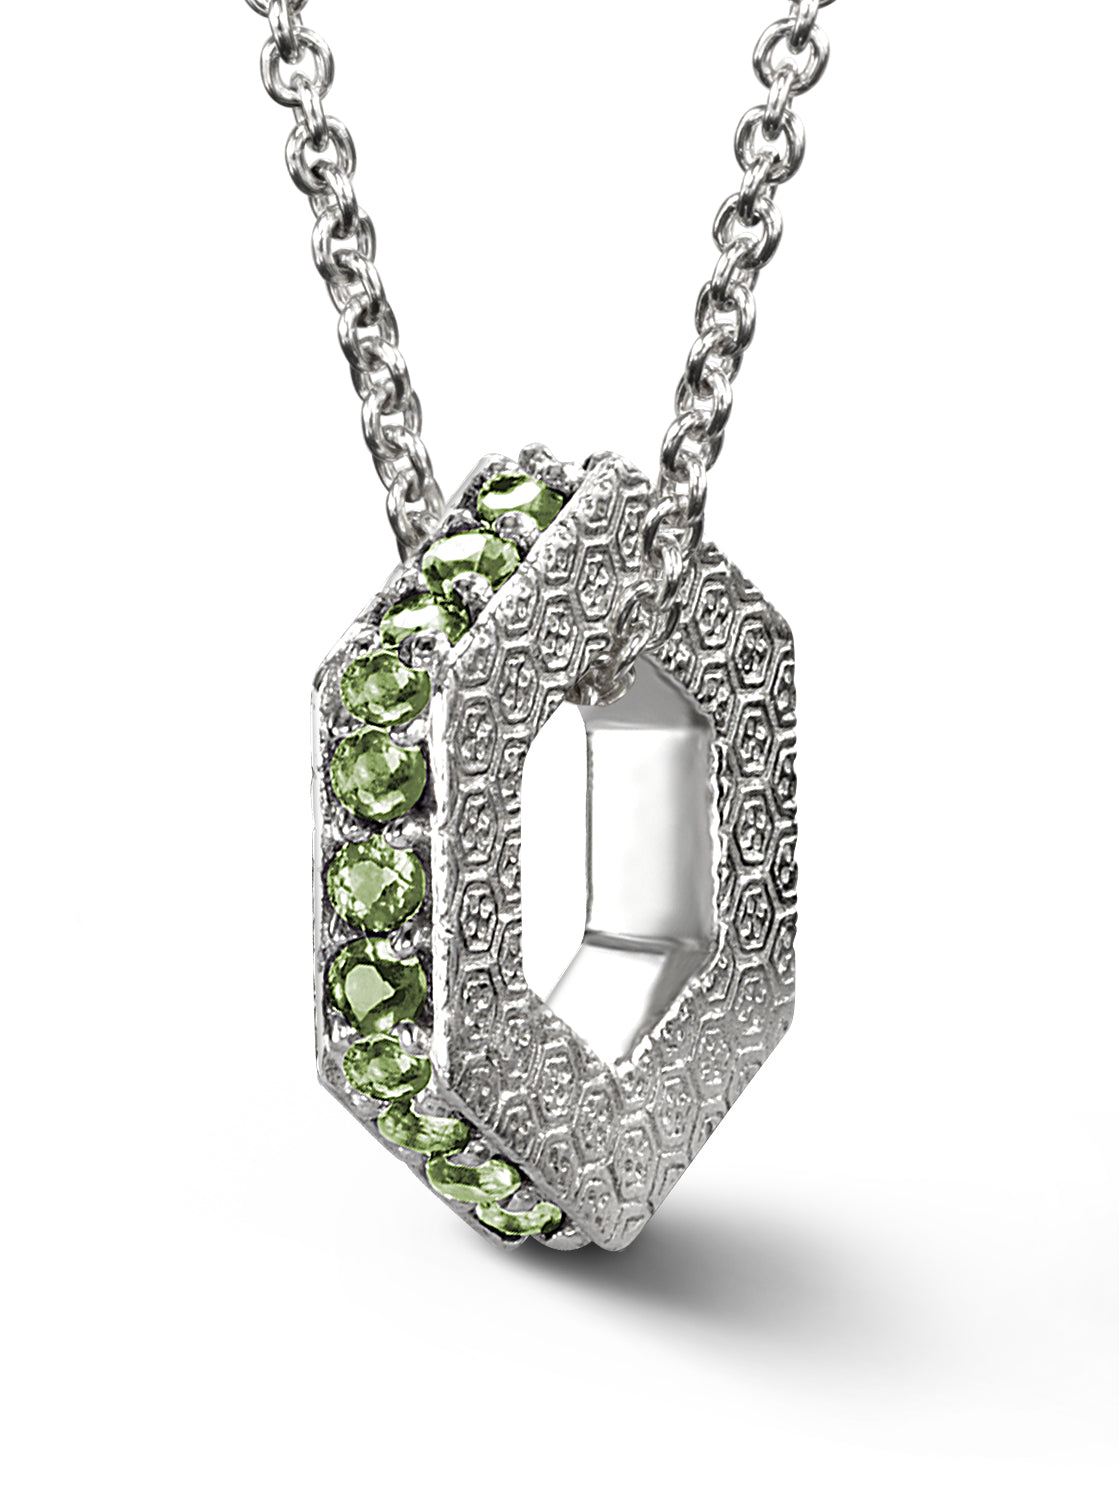 Bcouture August Keepsake-Peridot at Arman's Jewellers Kitchener